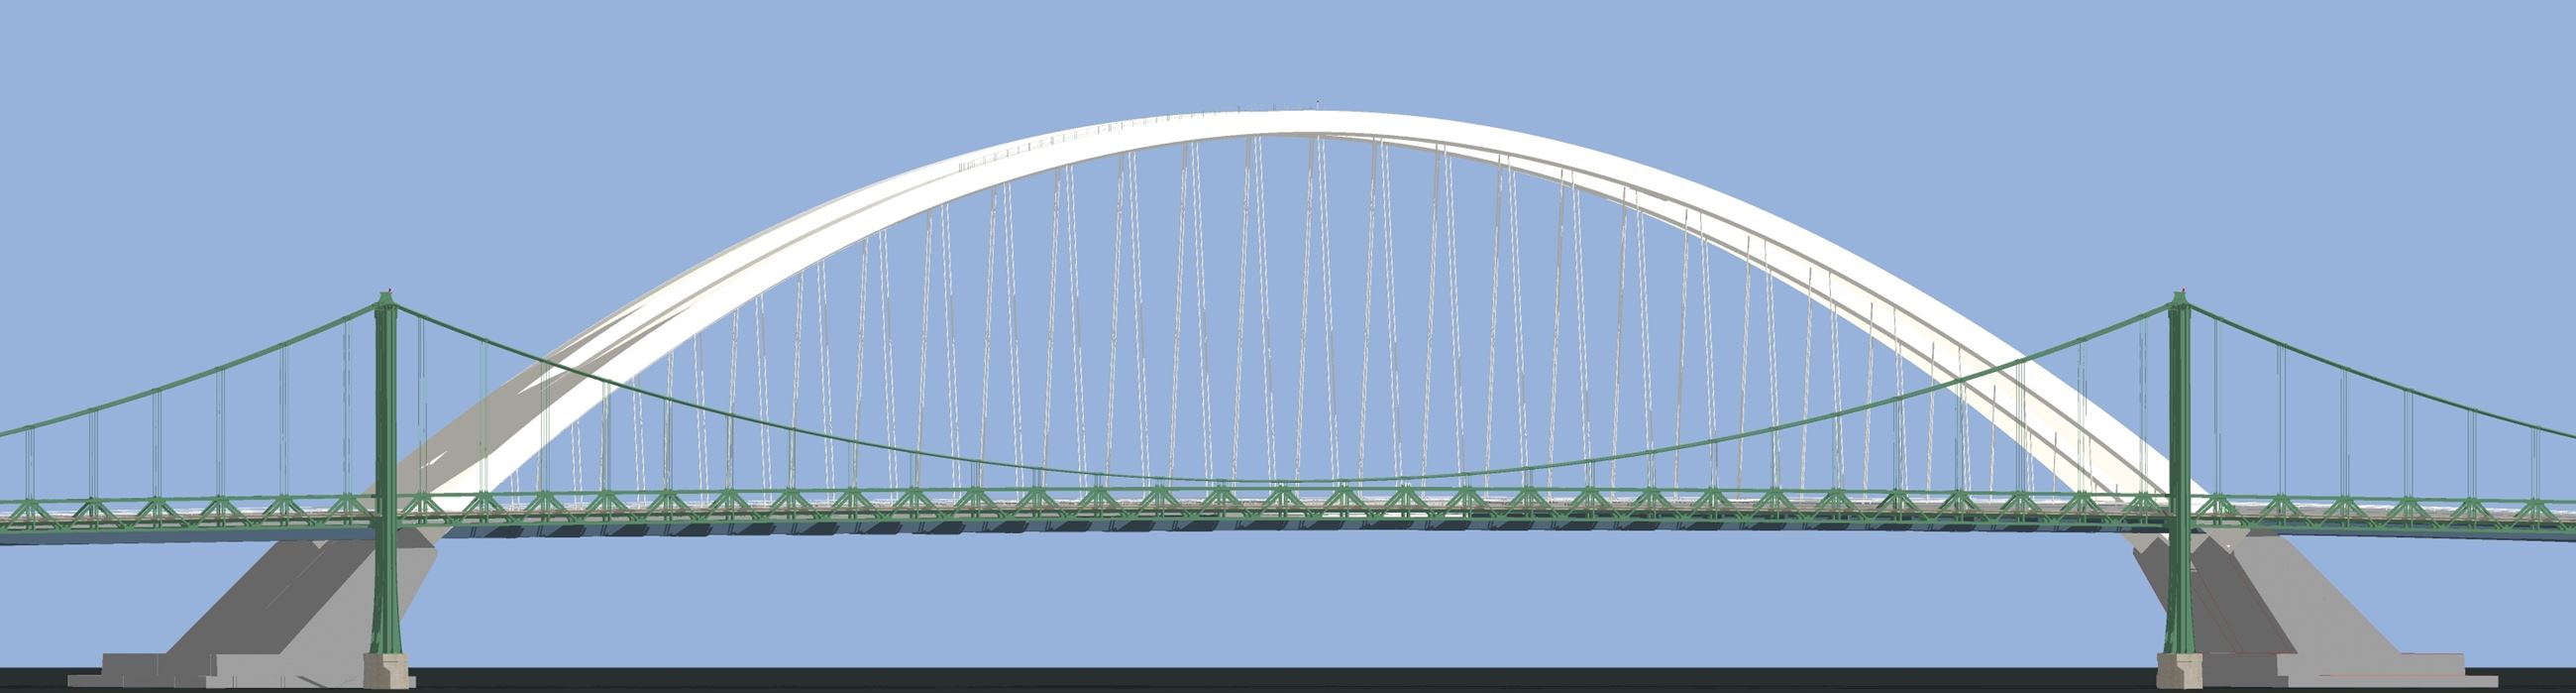 Bridge Elevation Comparison